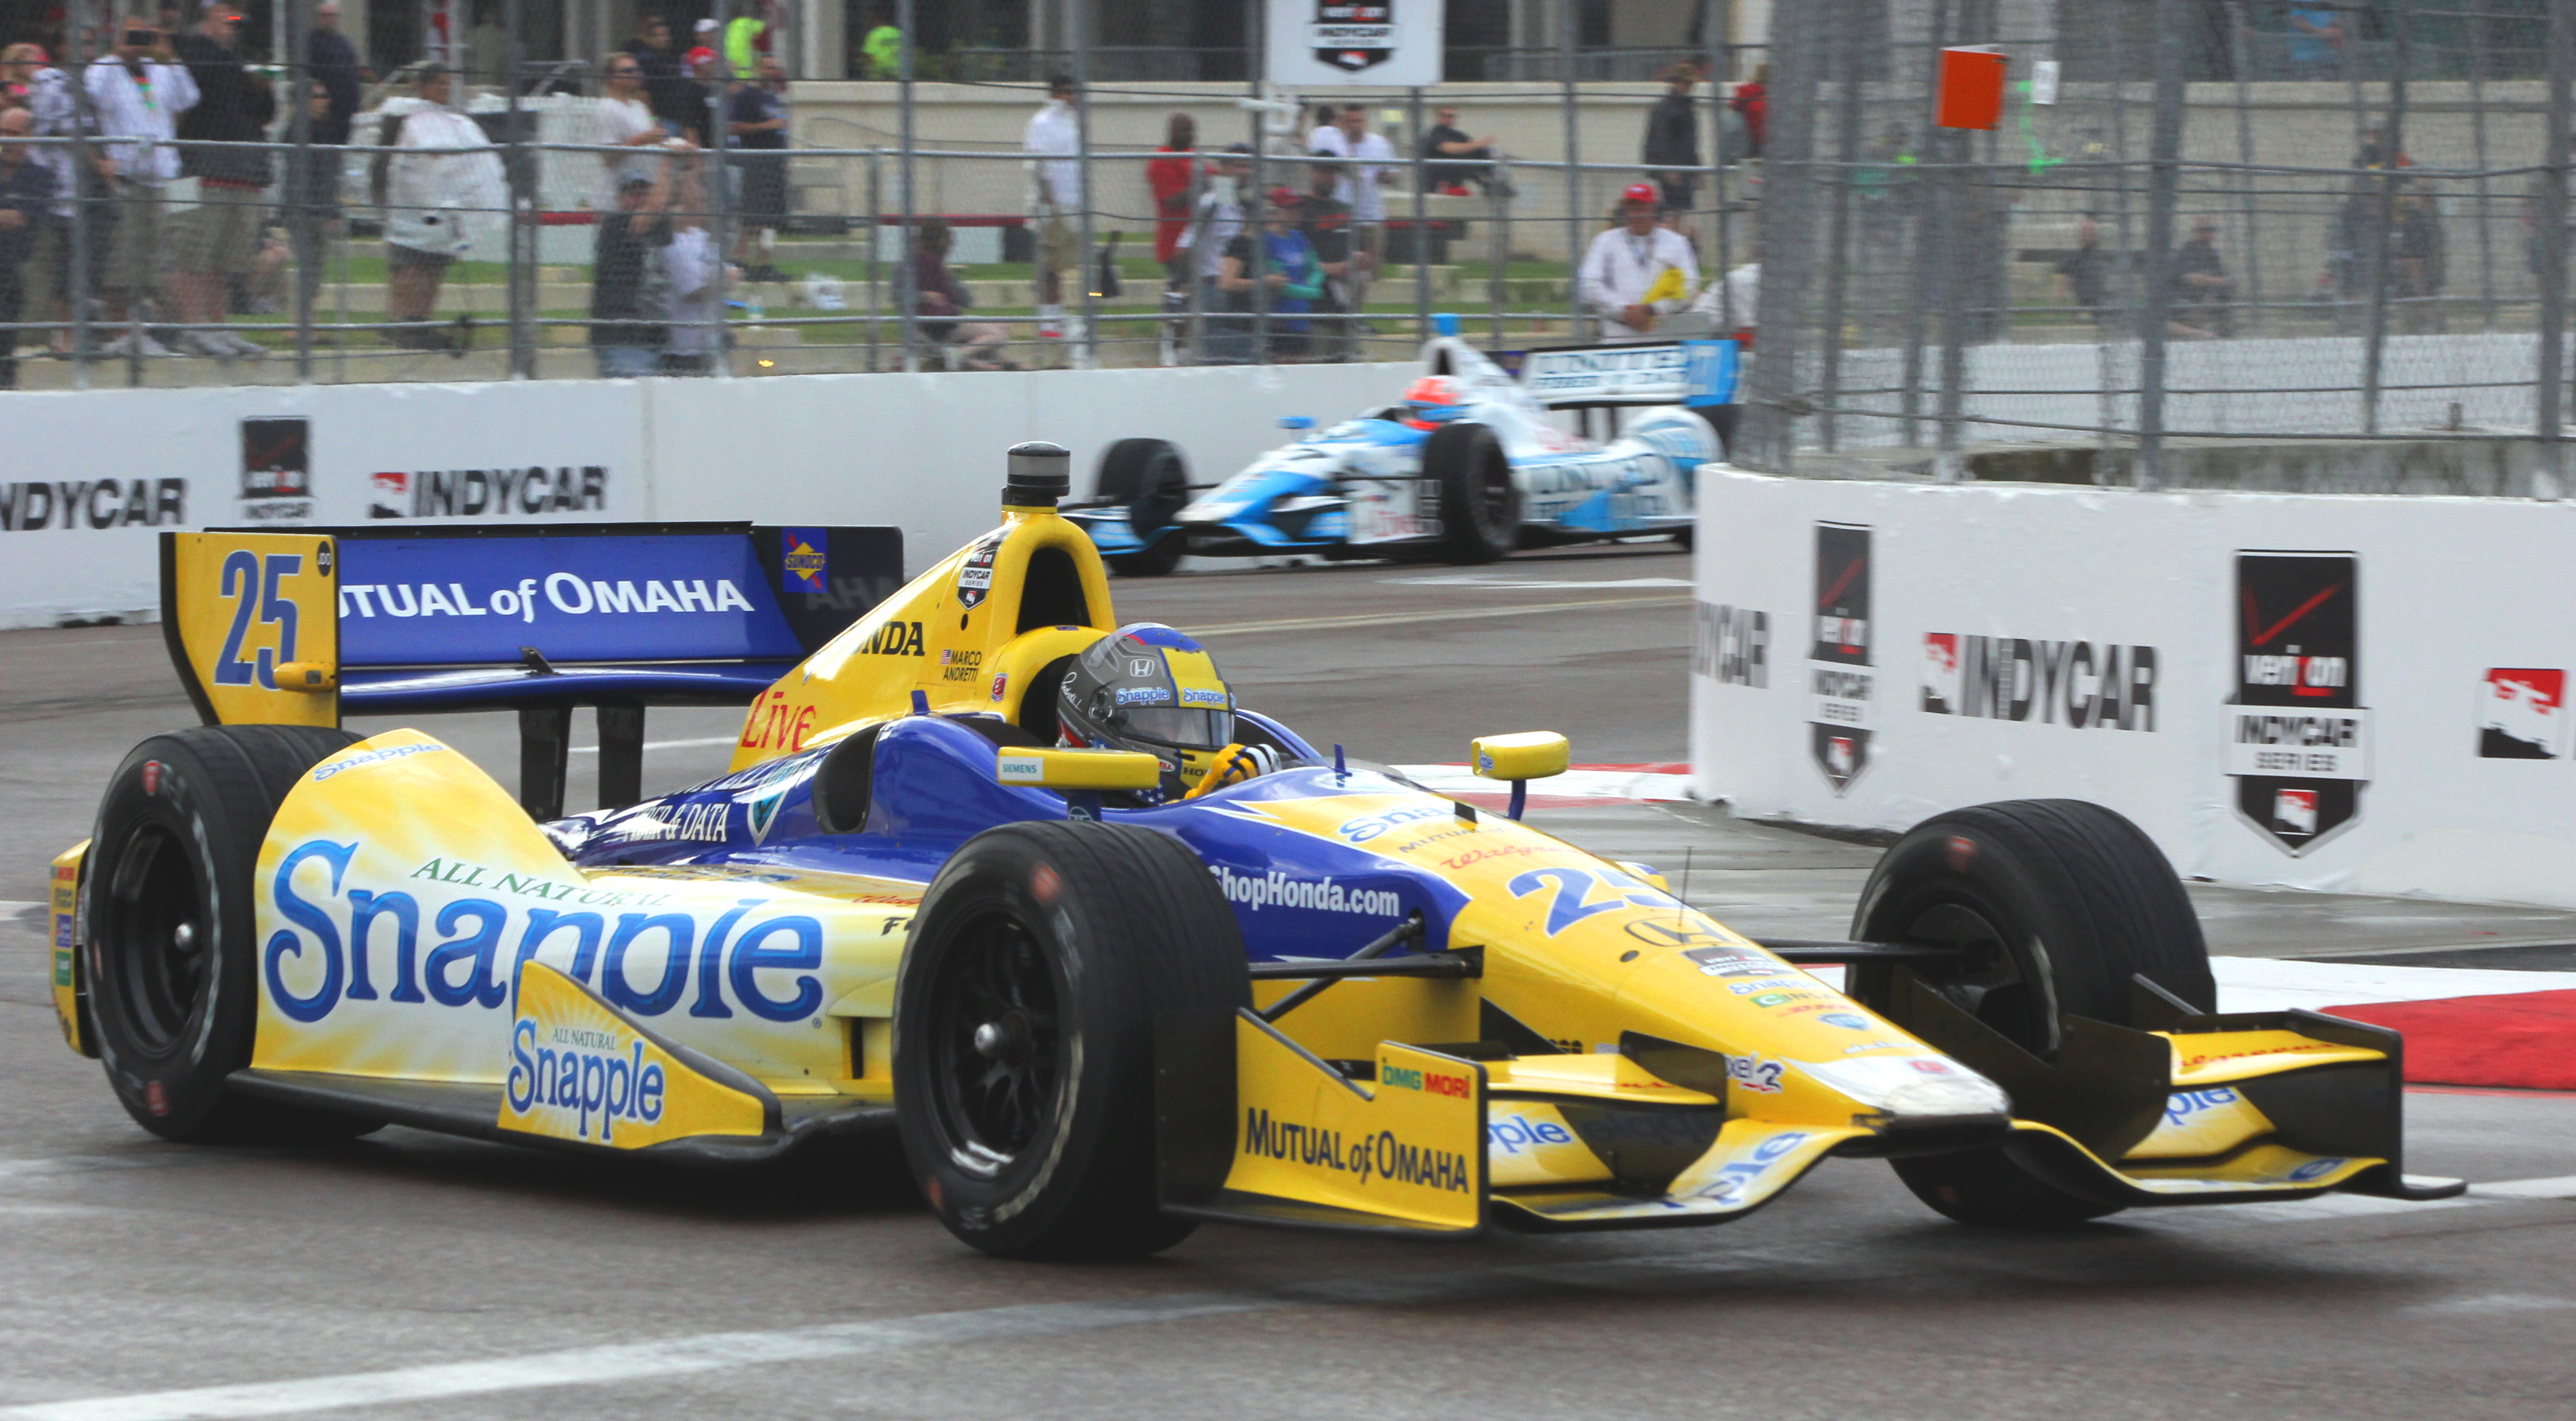 Marco Andretti in the #25 Snapple Andretti Autsport Dallara-Honda used the same set of red tires for Q2 and Q3, to save a set for race day. (Chris Jasurek/Epoch Times)